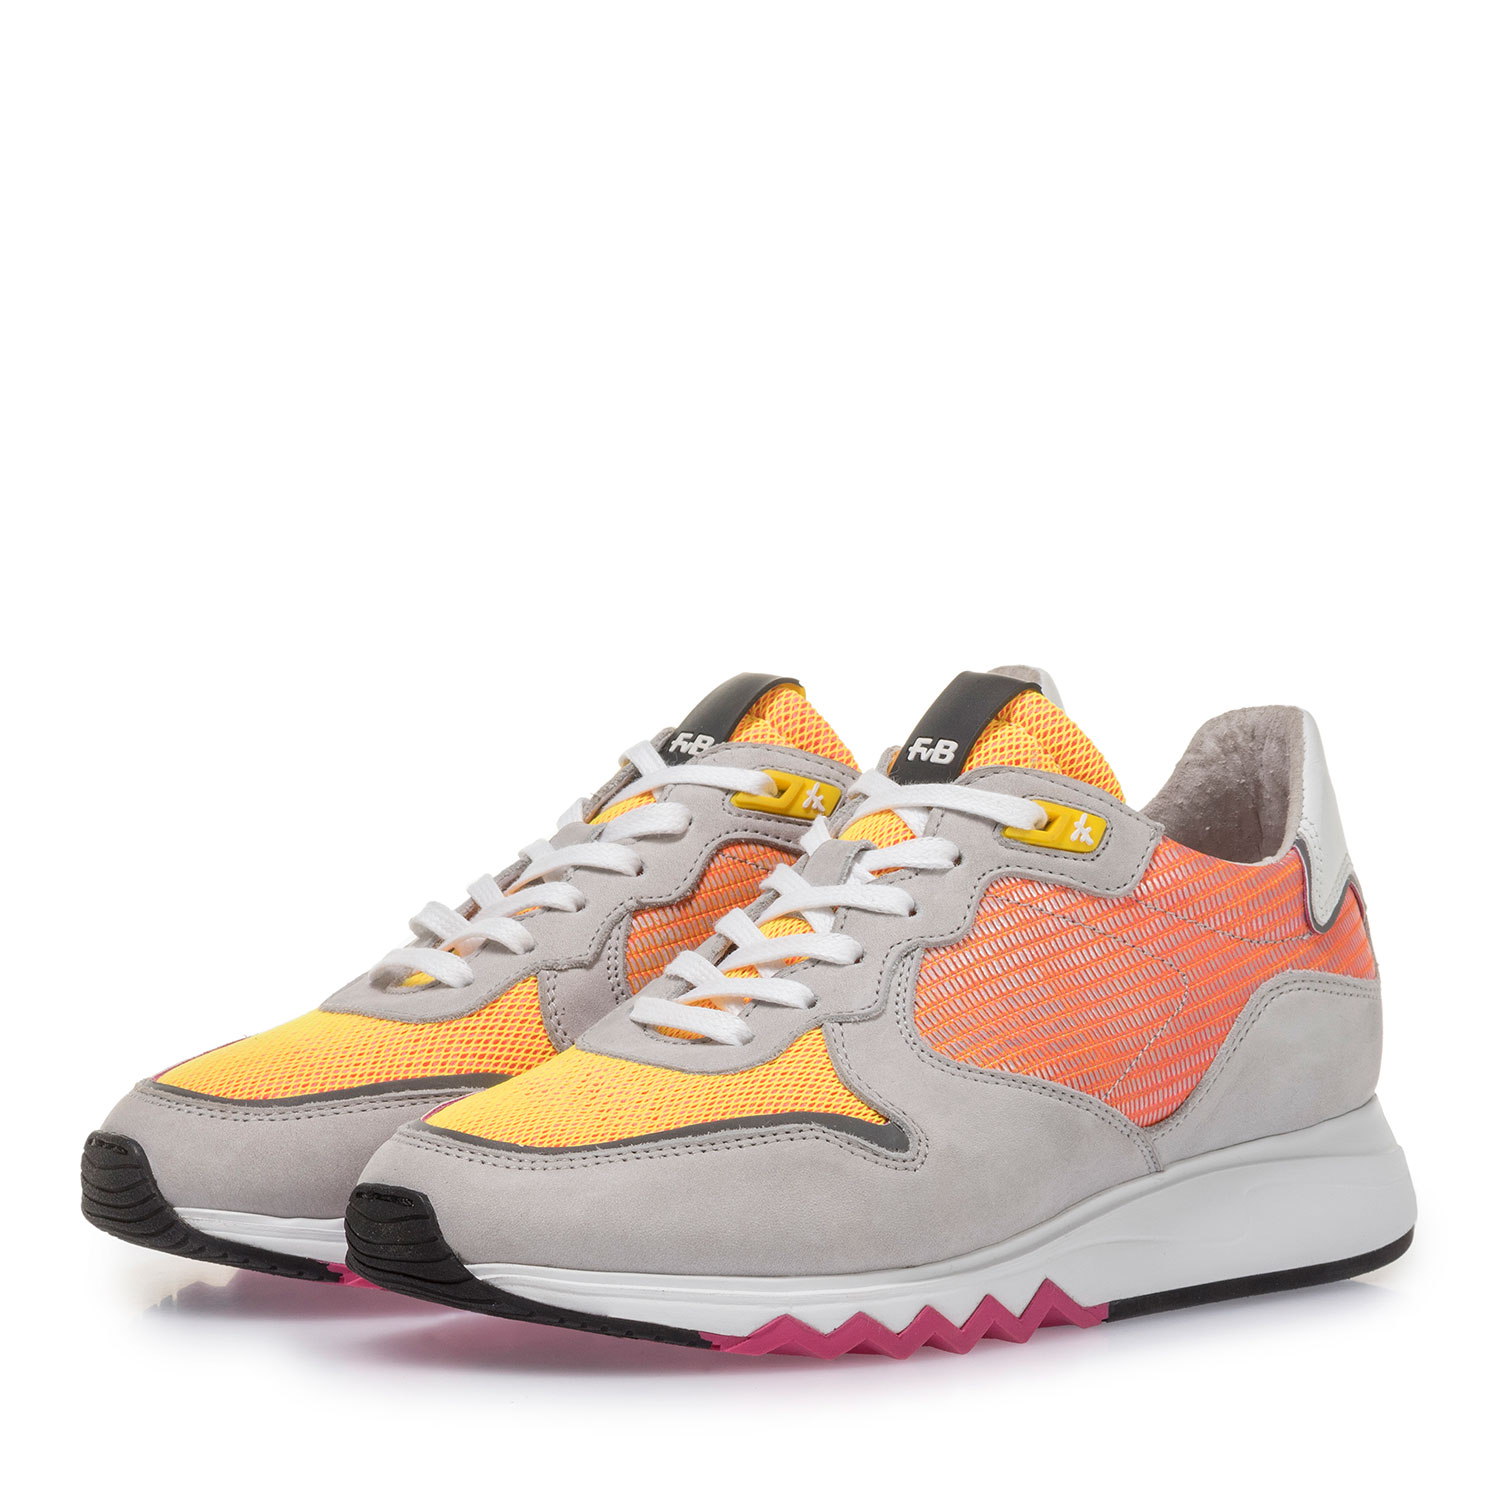 85302/05 - Grey leather sneaker with orange and yellow details